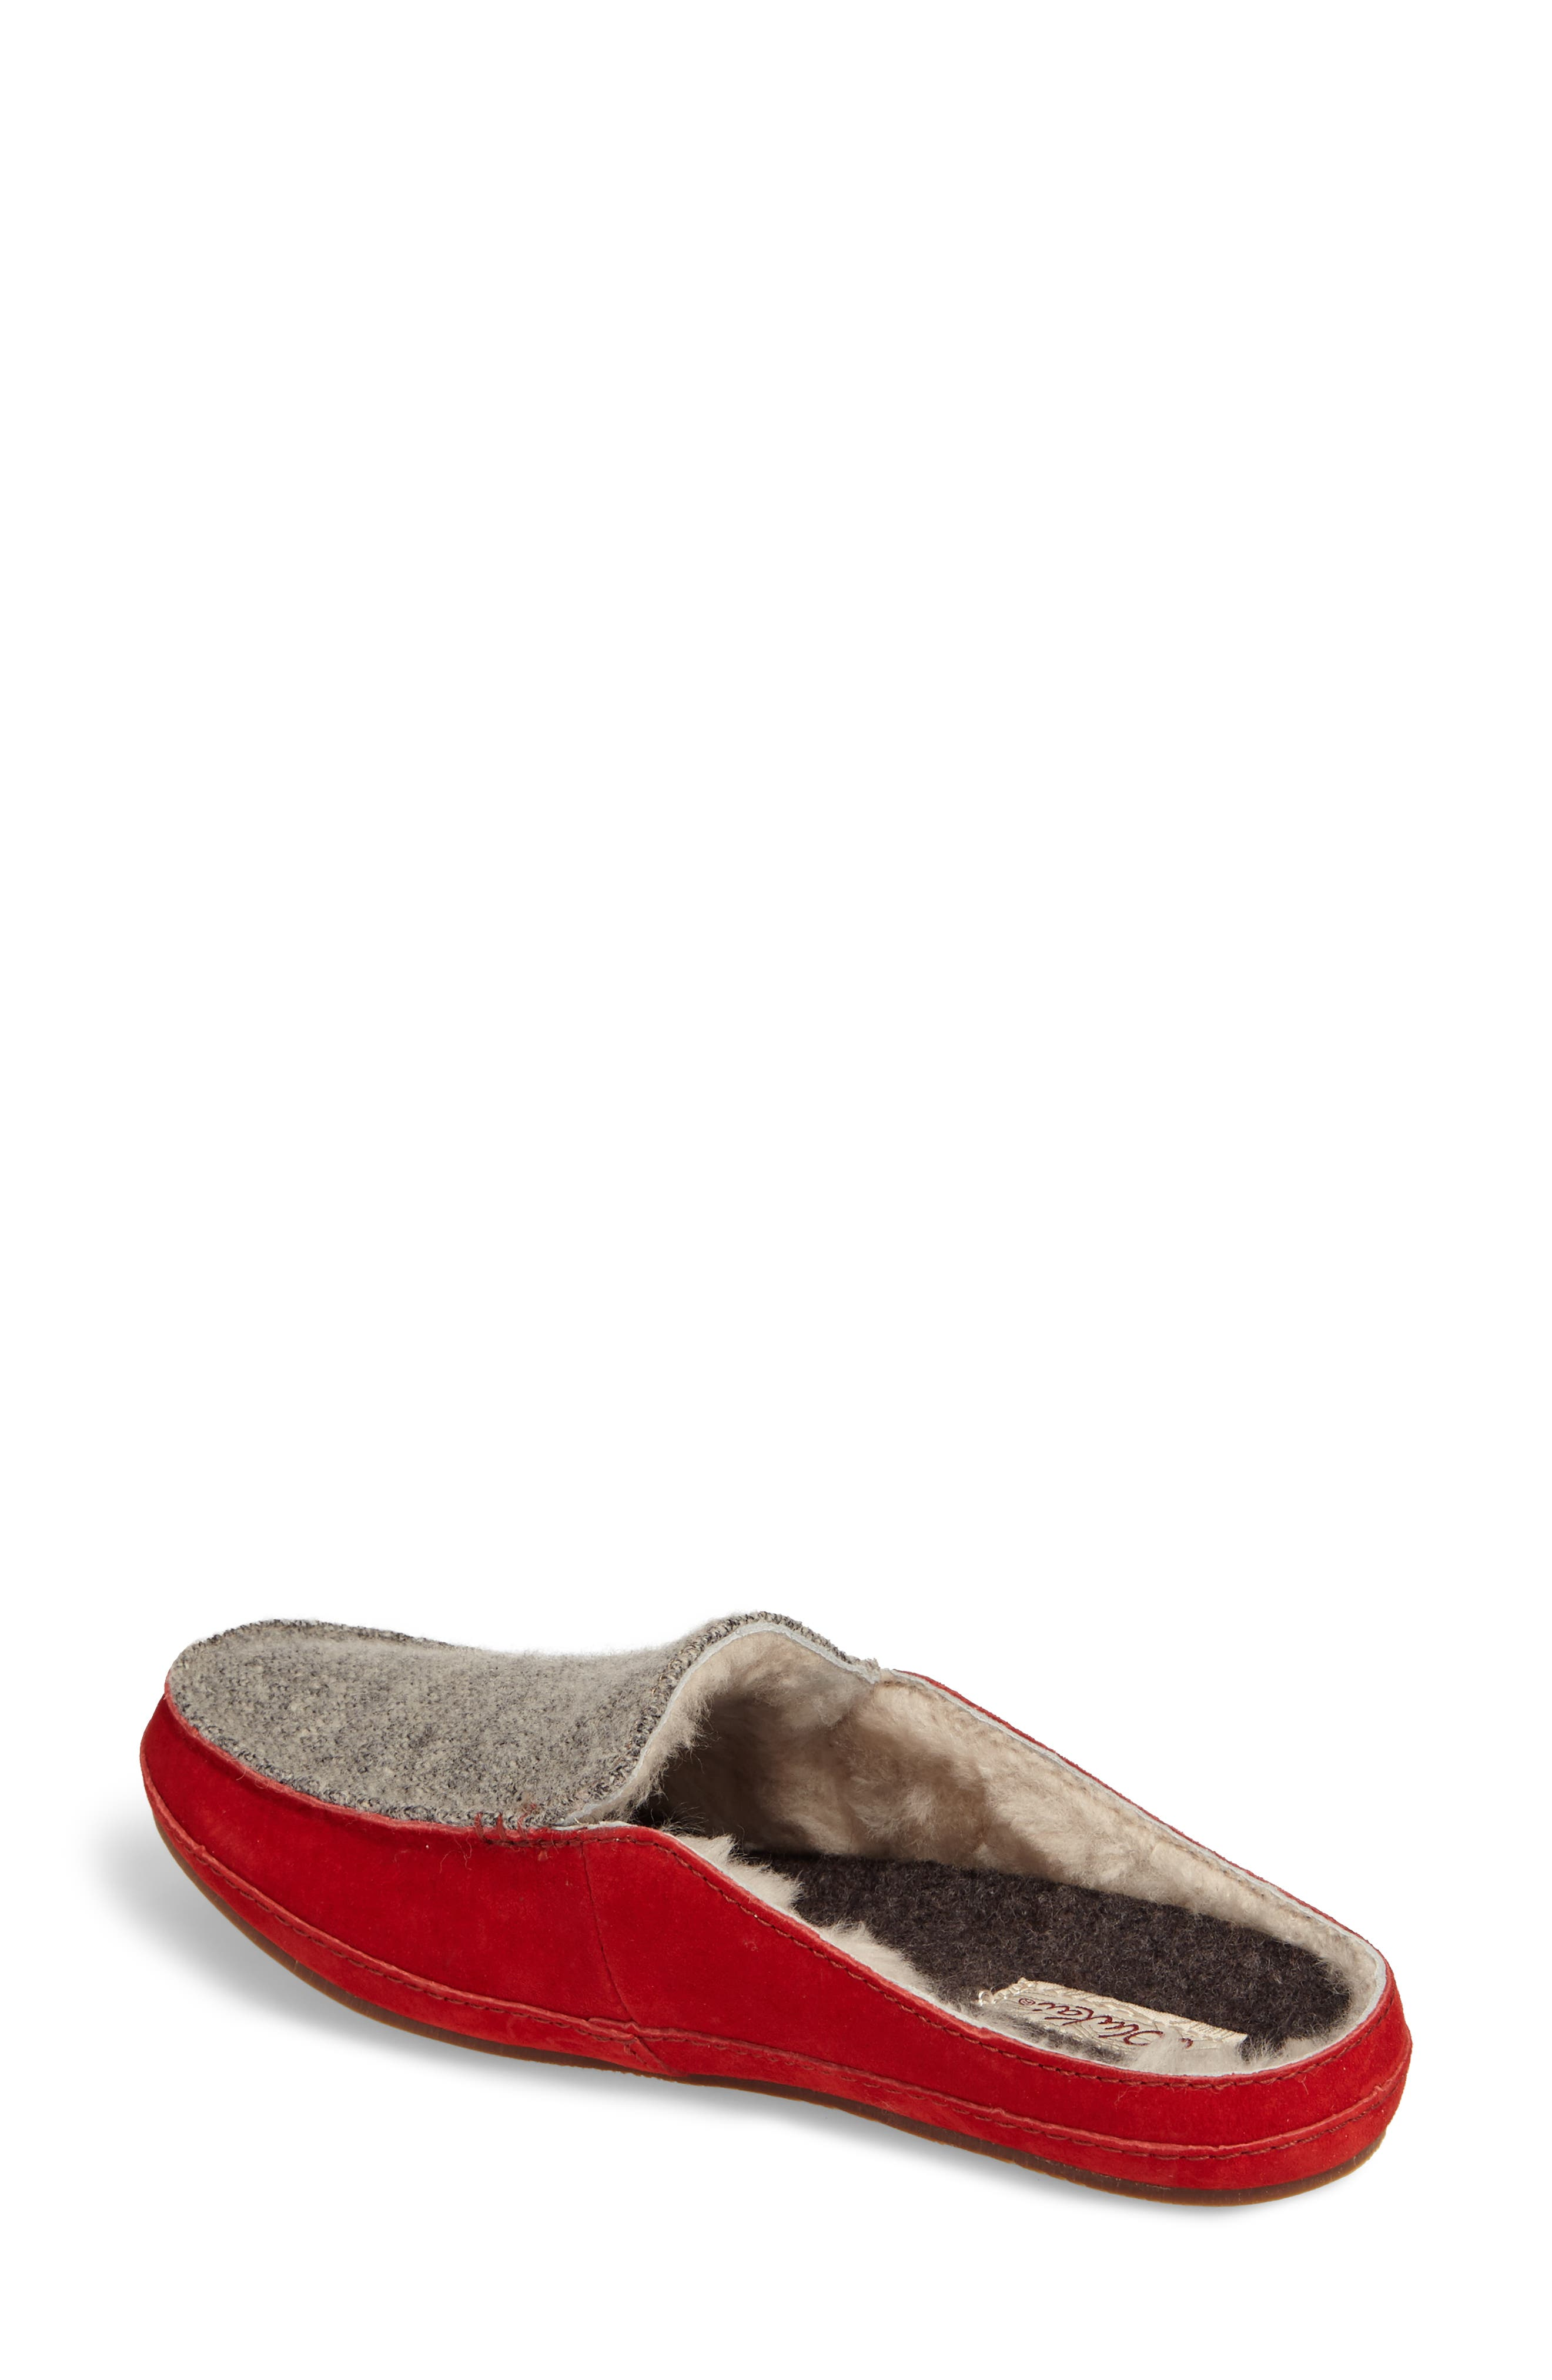 Alaula Genuine Shearling Lined Slipper,                             Alternate thumbnail 2, color,                             Cooler Grey/ Red Mud Leather